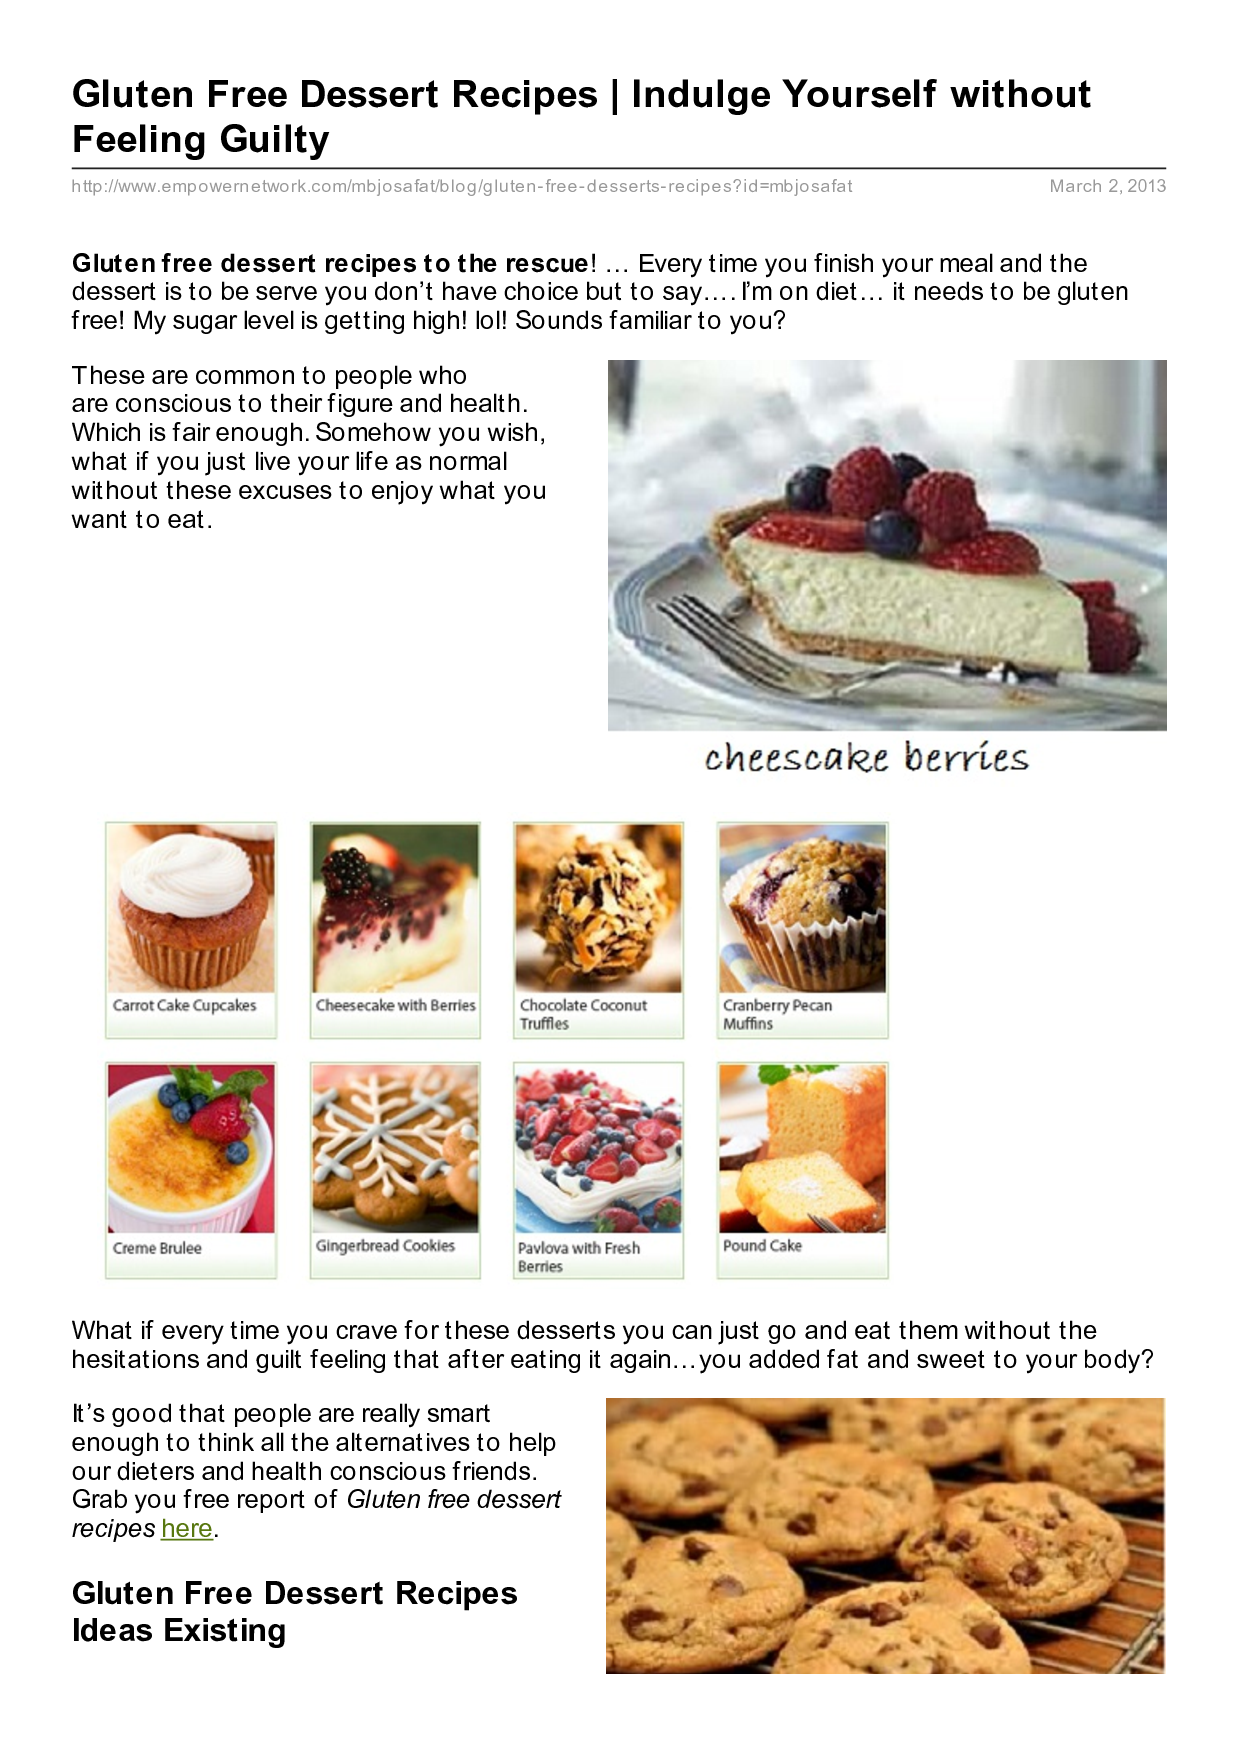 """recipes Enjoy Delicious Fat Burning Brownies That Make You Leaner By """"Guilt Free Desserts"""""""